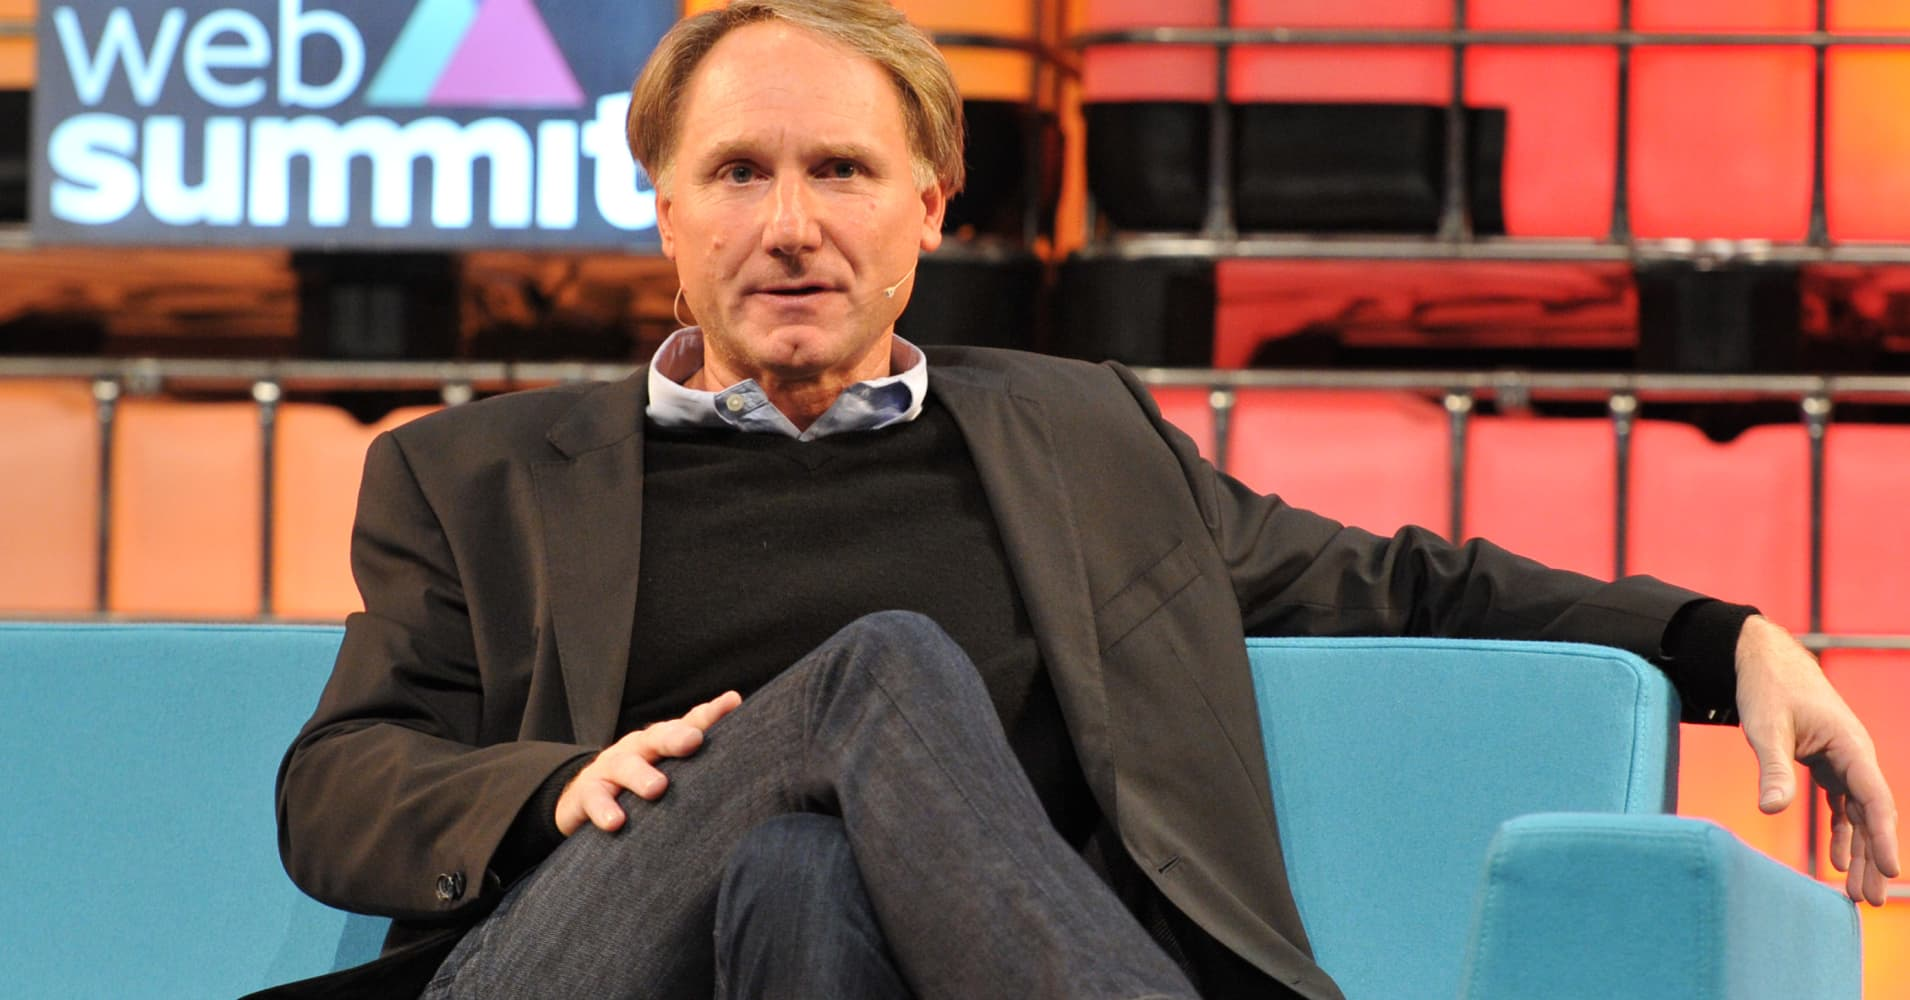 Author Dan Brown speaks on stage during the third day of the 2015 Web Summit on November 5, 2015 in Dublin, Ireland.